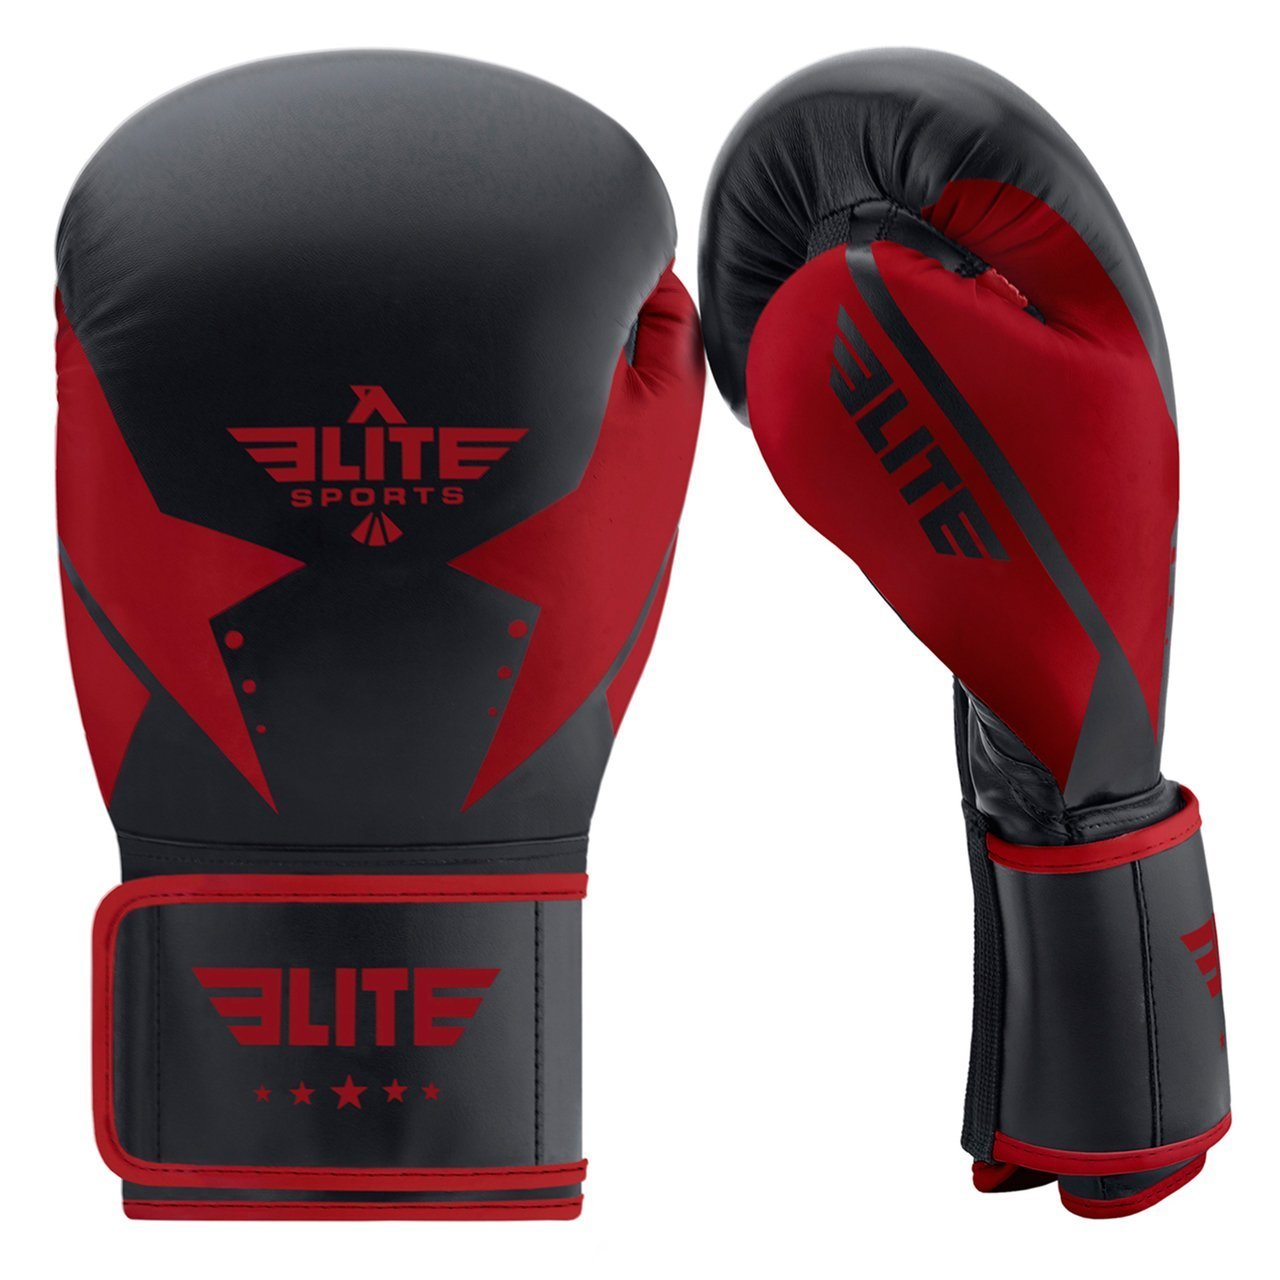 Elite Sports Star Series Black/Red Adult Boxing Gloves